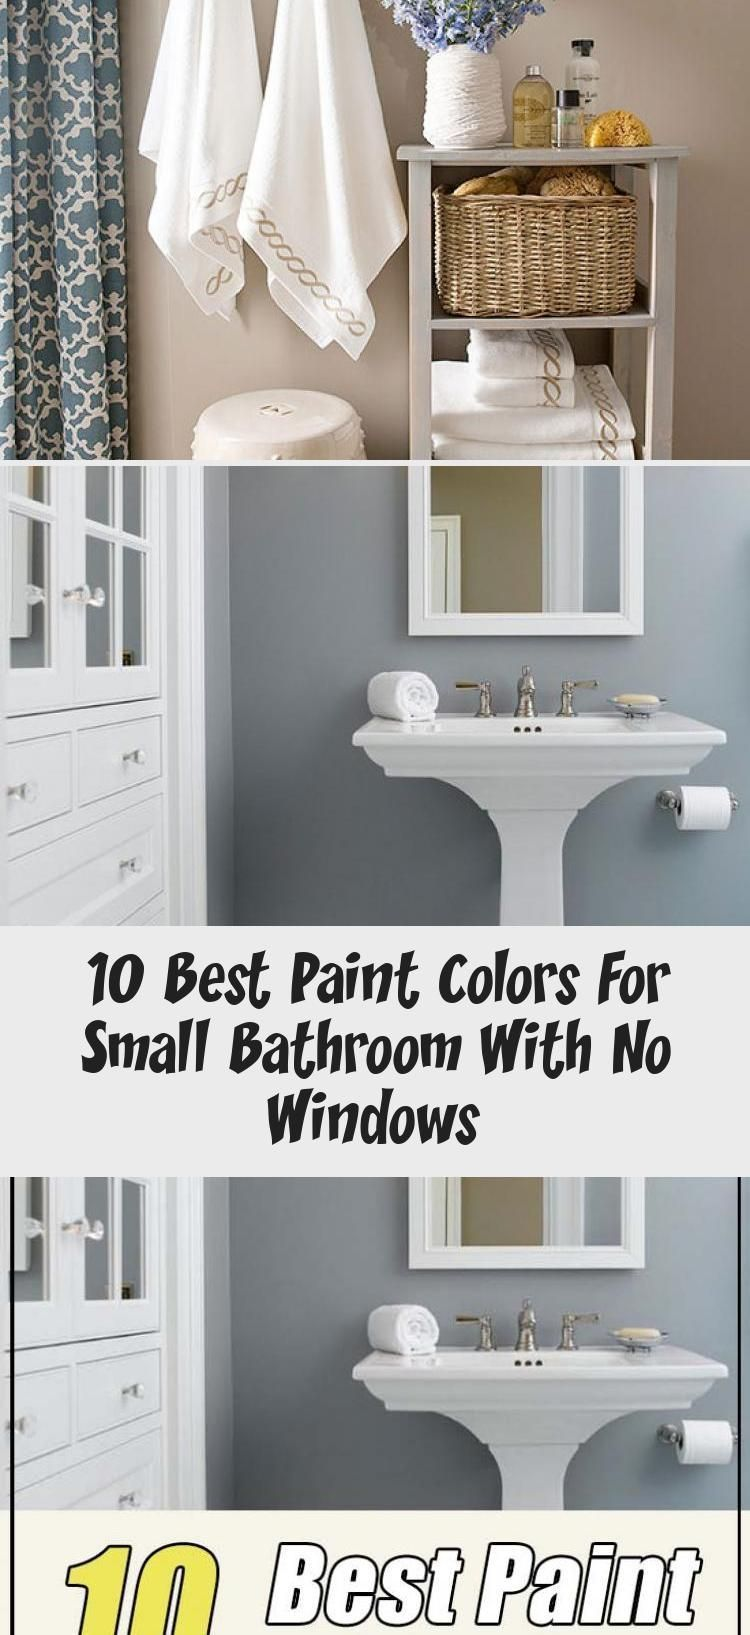 A Comprehensive Overview On Home Decoration In 2020 Small Bathroom Colors Gray Bathroom Decor Best Paint Colors